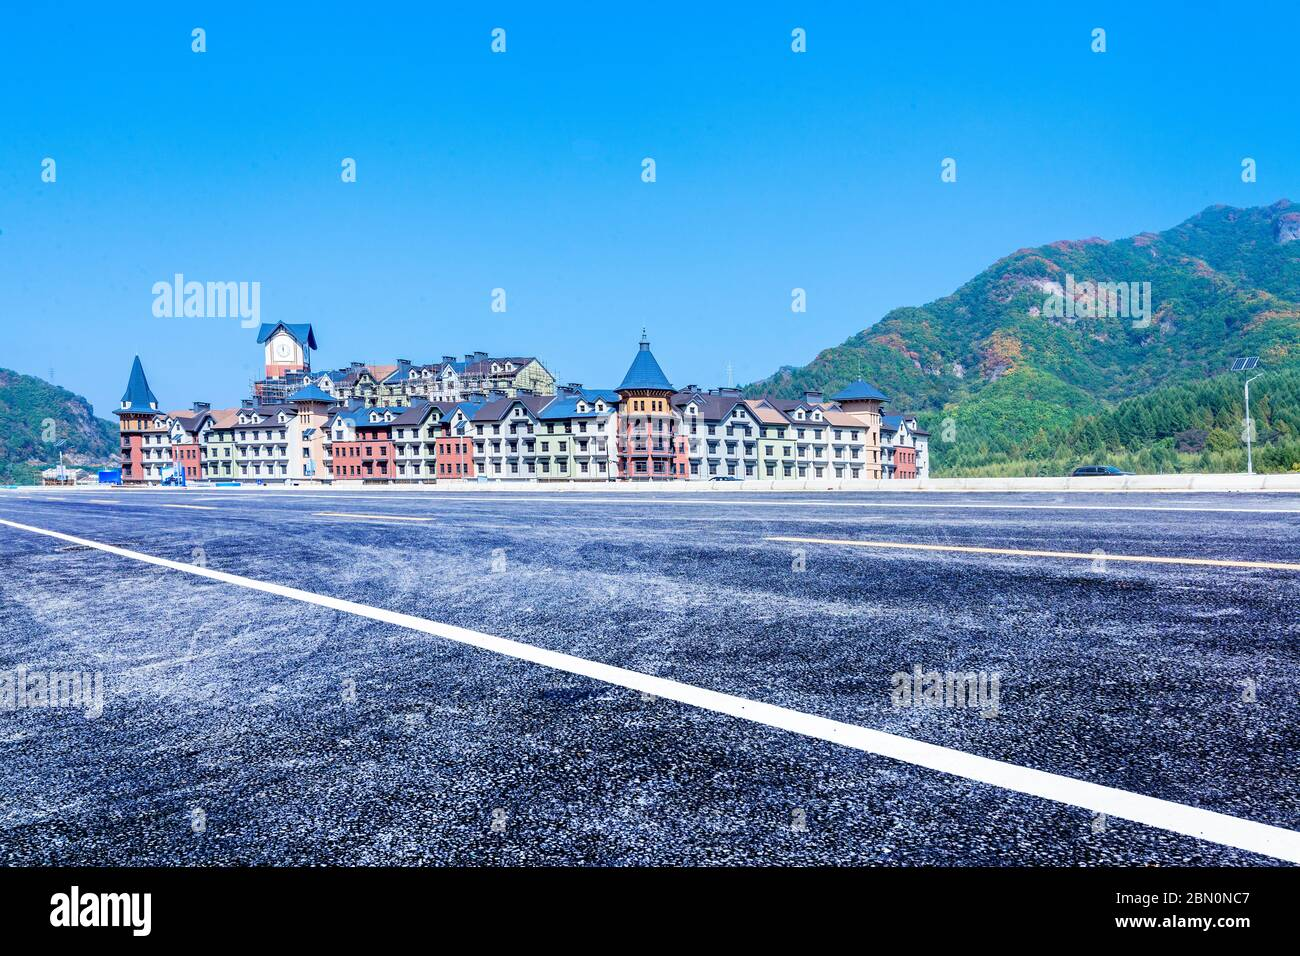 The empty car-free highway and the European-style building castle, in the distance are green mountains. Stock Photo